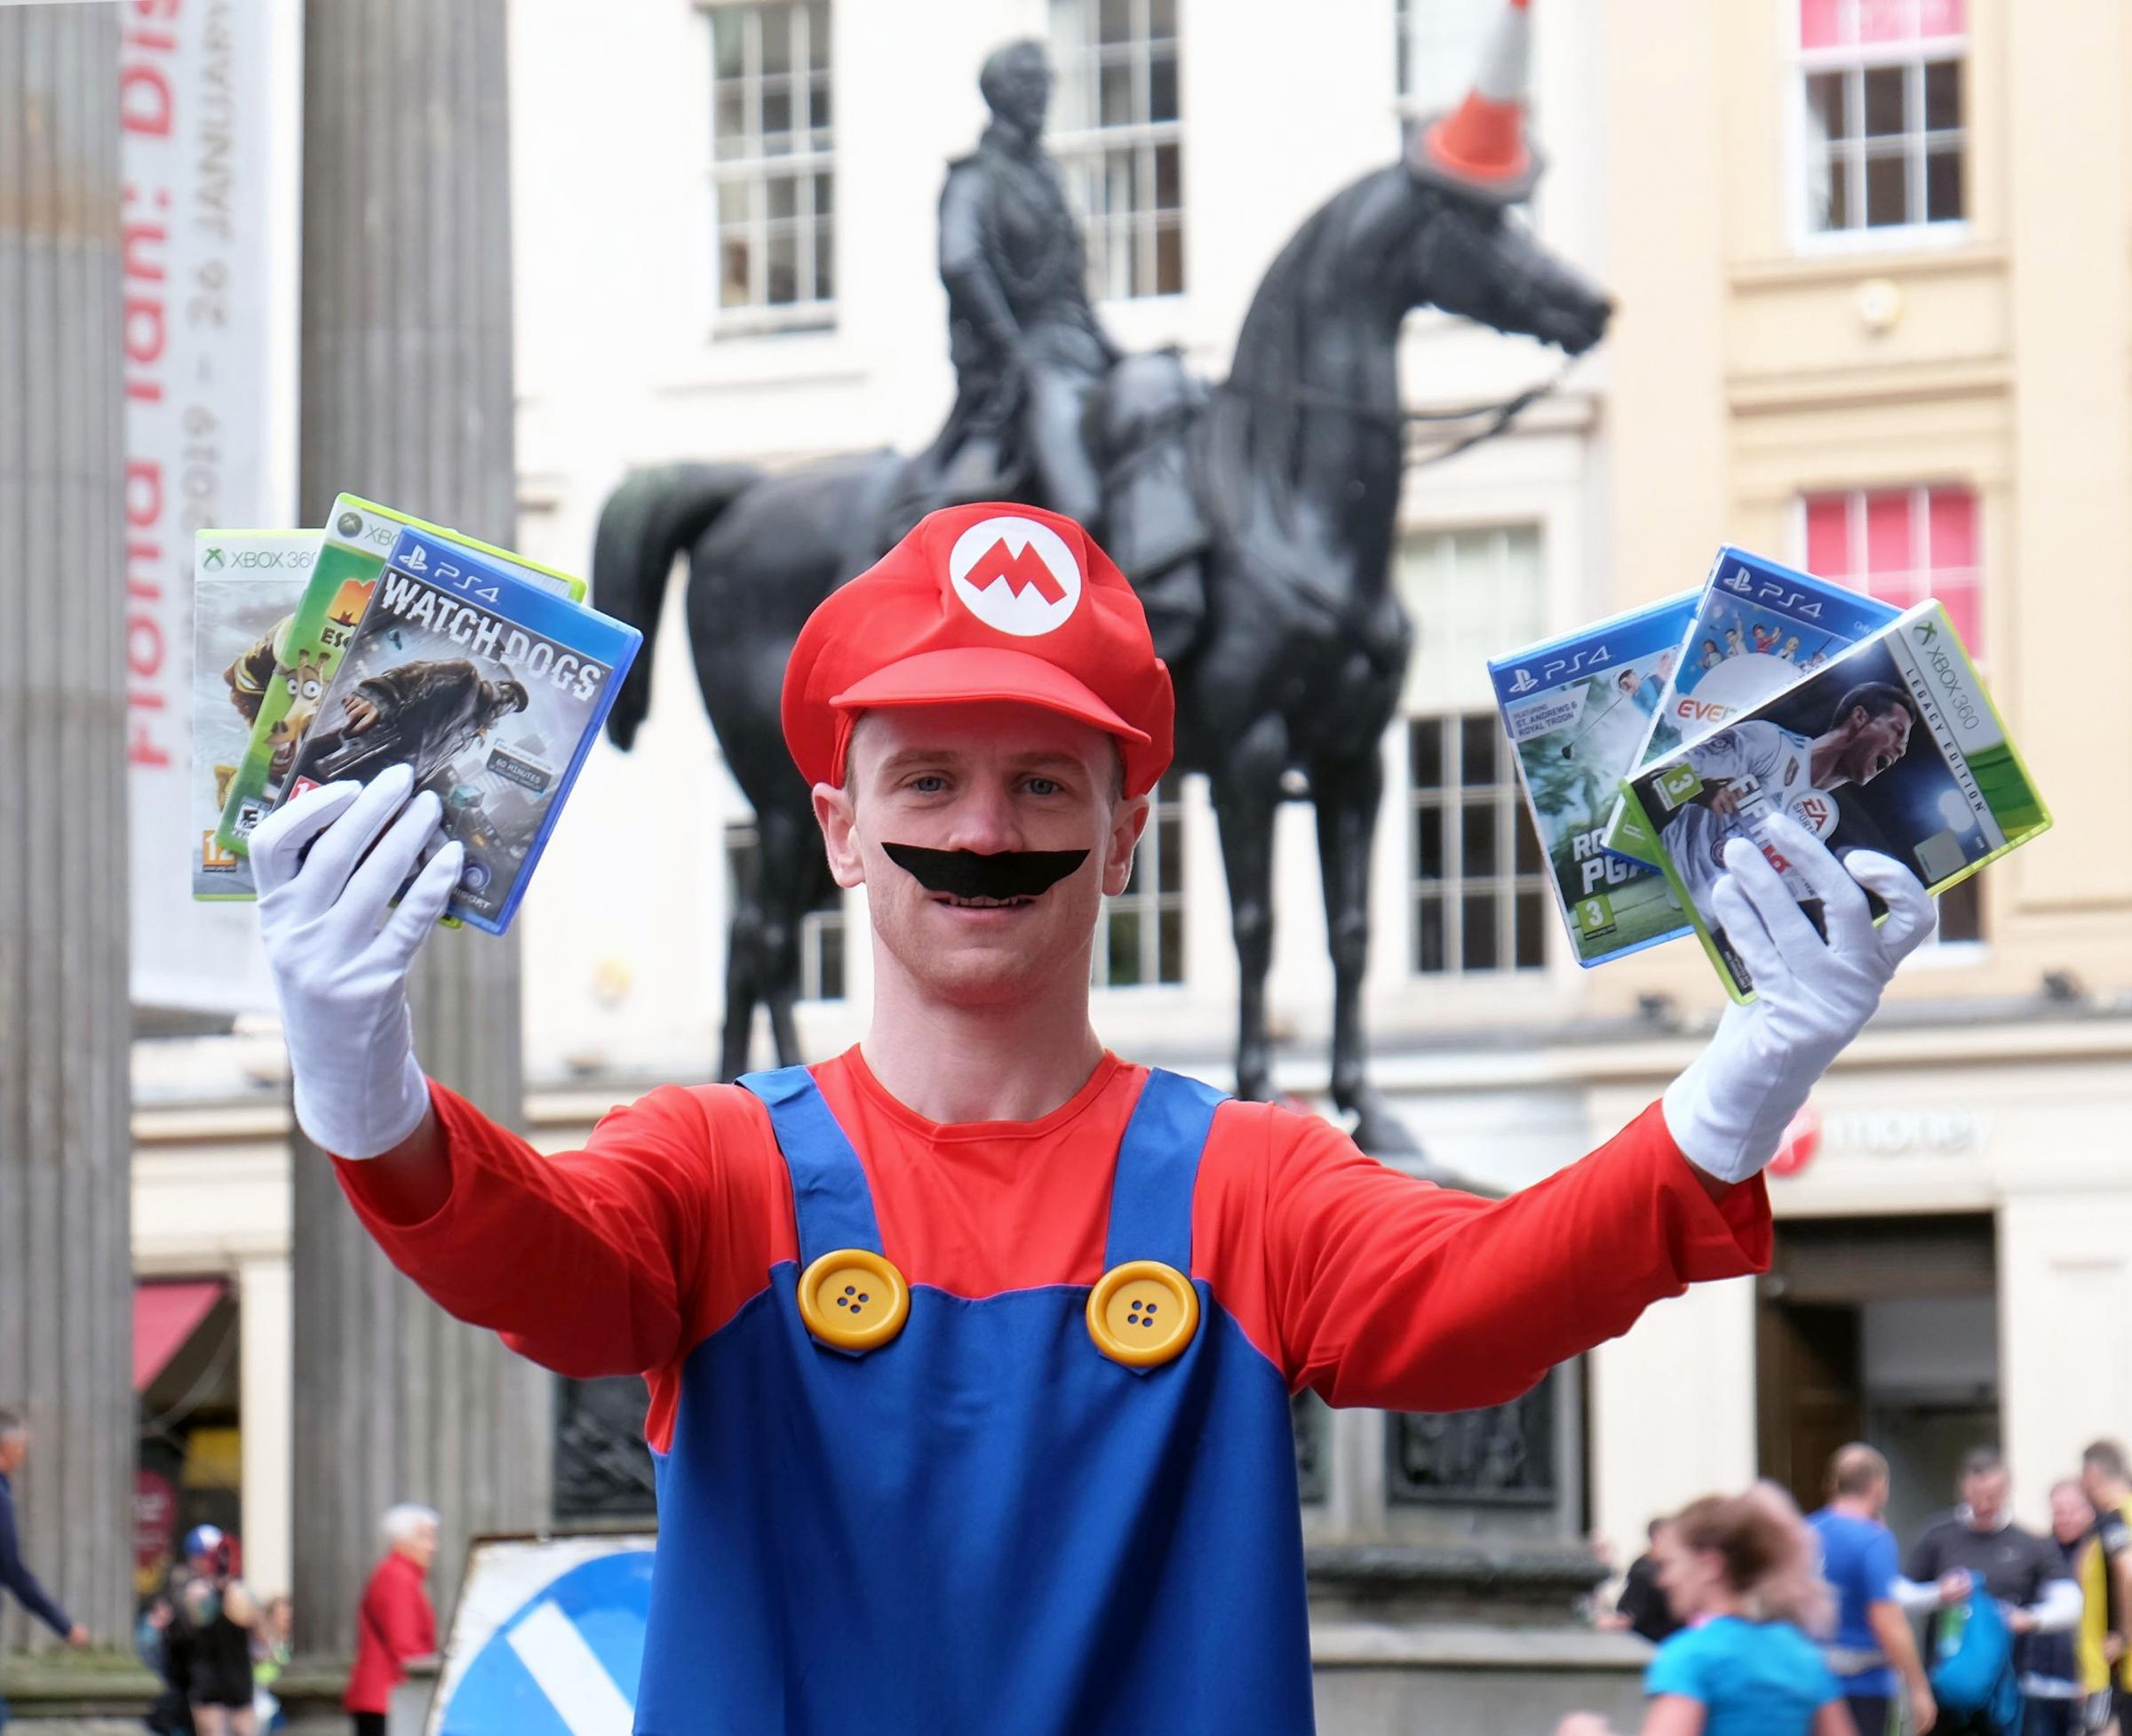 Super Mario in Scotland for first-ever Glasgow Gaming Market